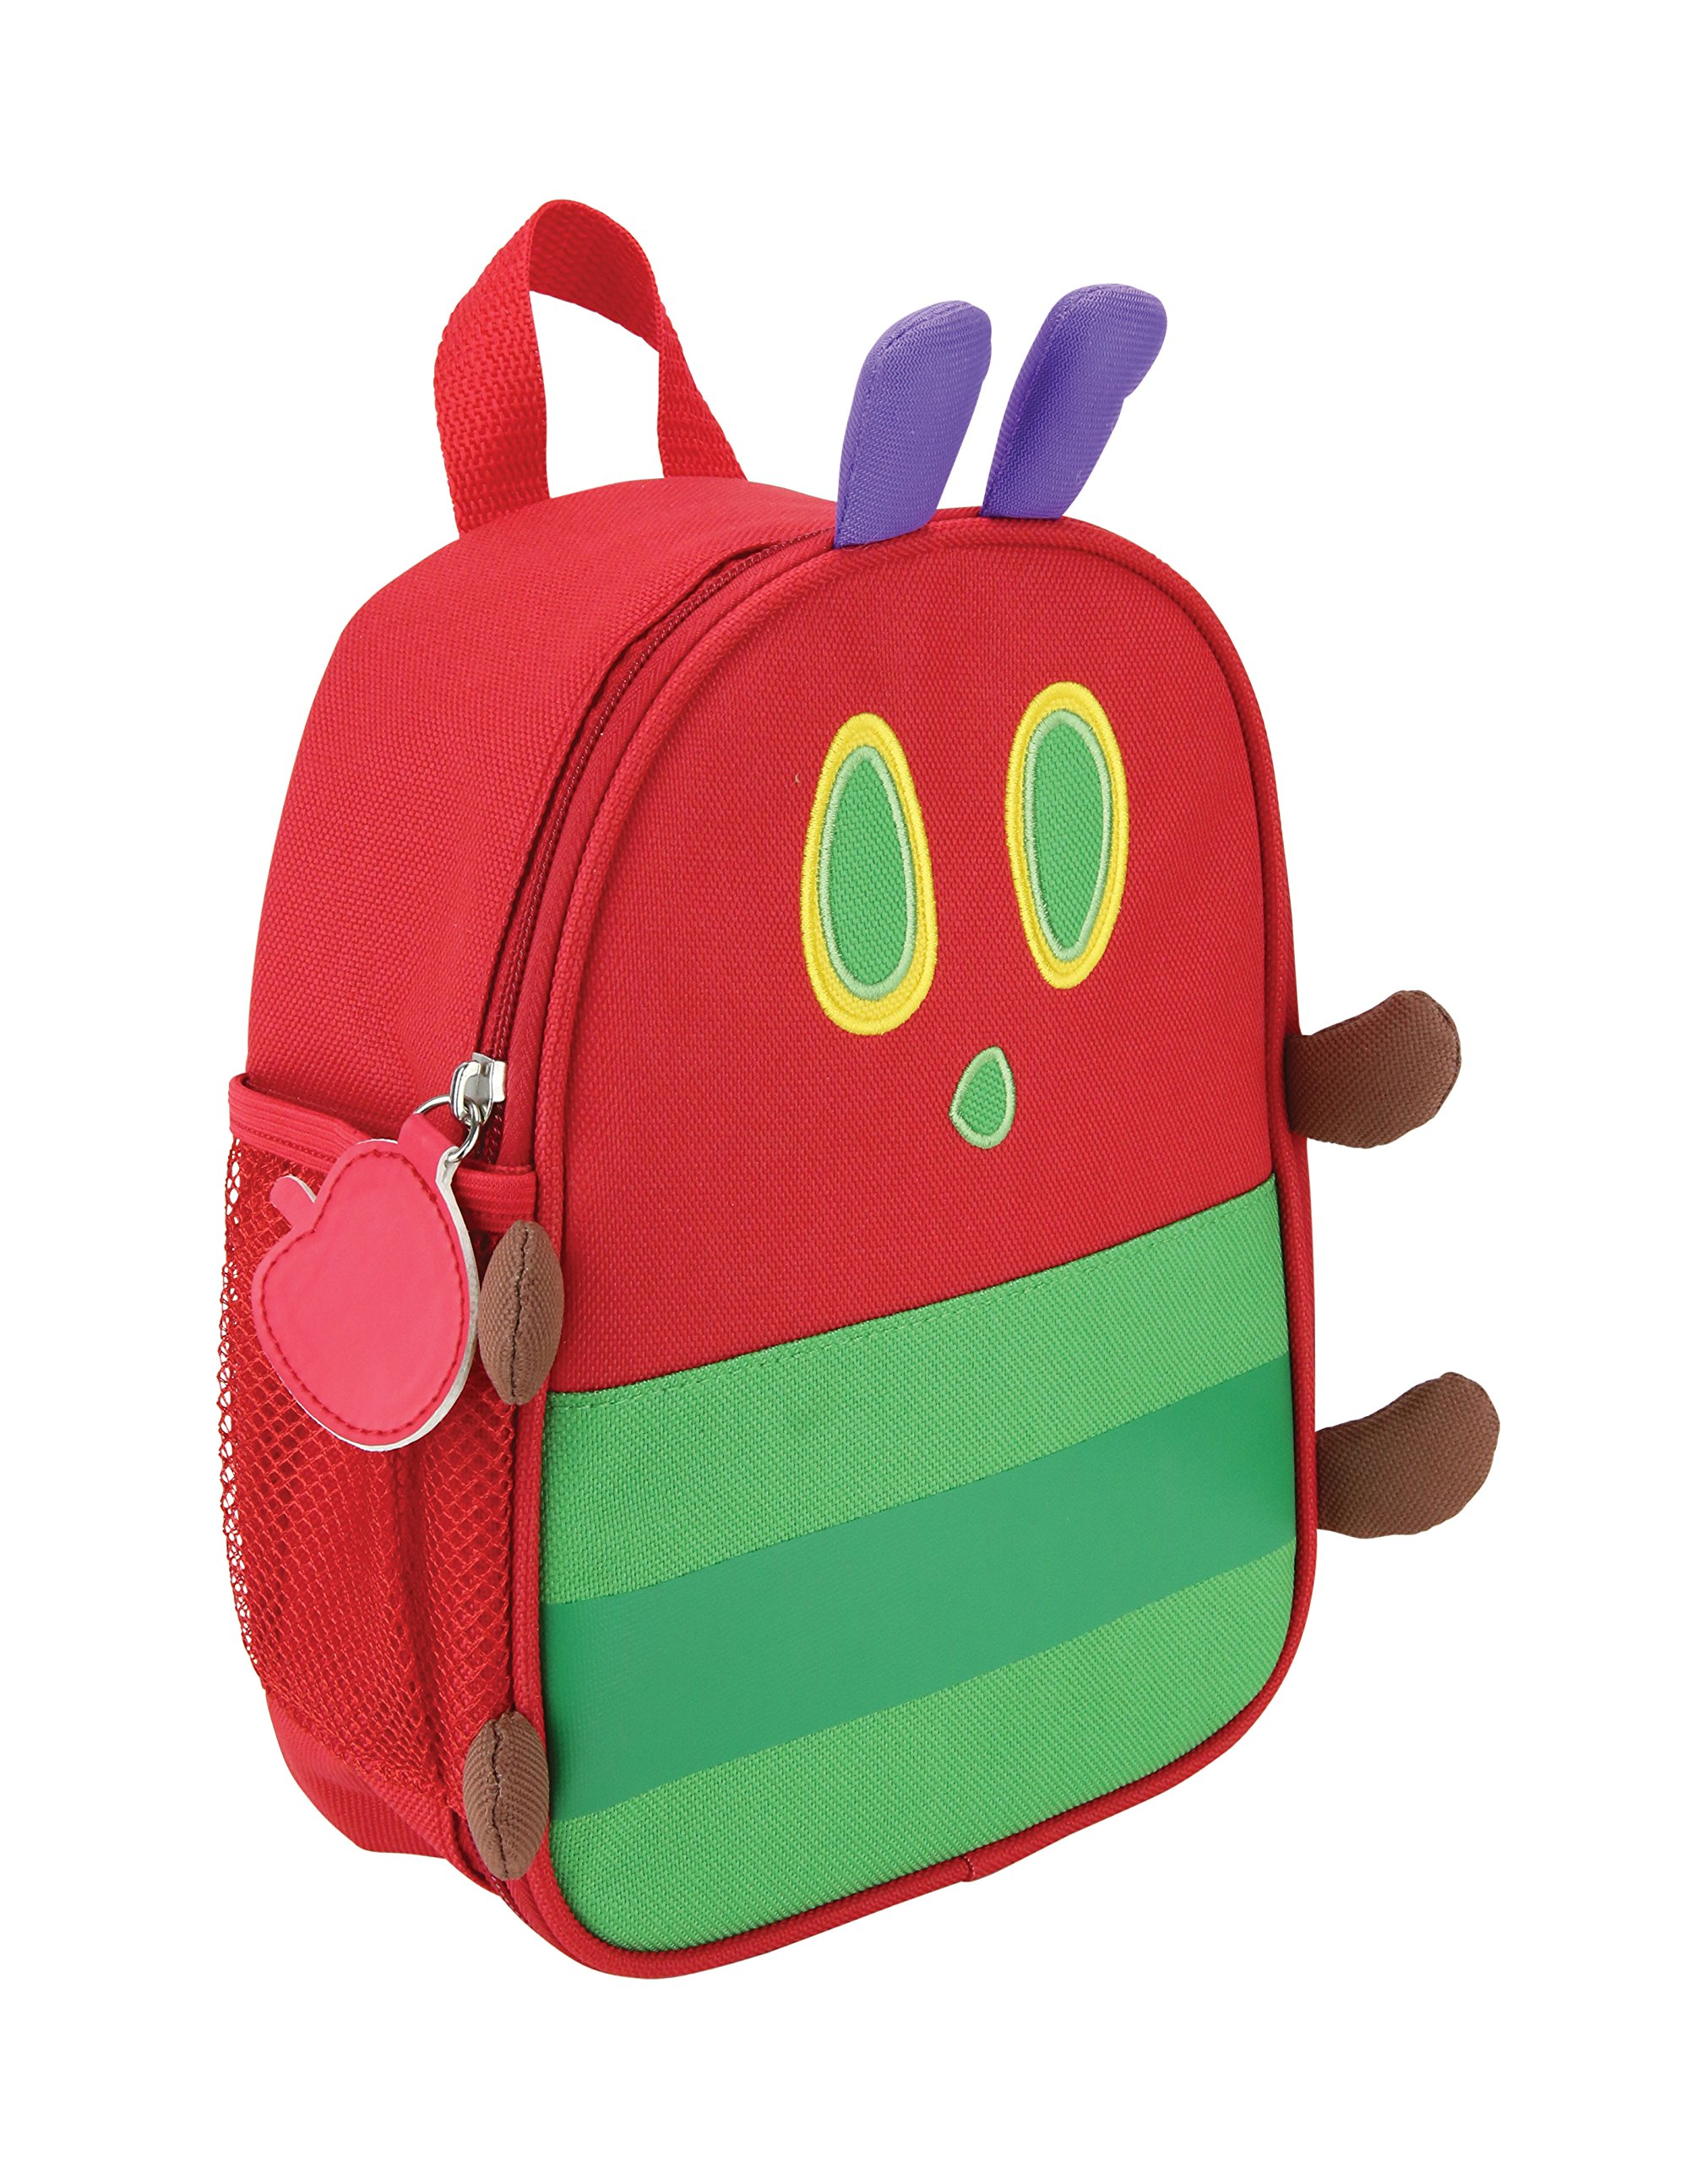 Kids Preferred The World of Eric Carle, The Very Hungry Caterpillar Lunchbag, 10''